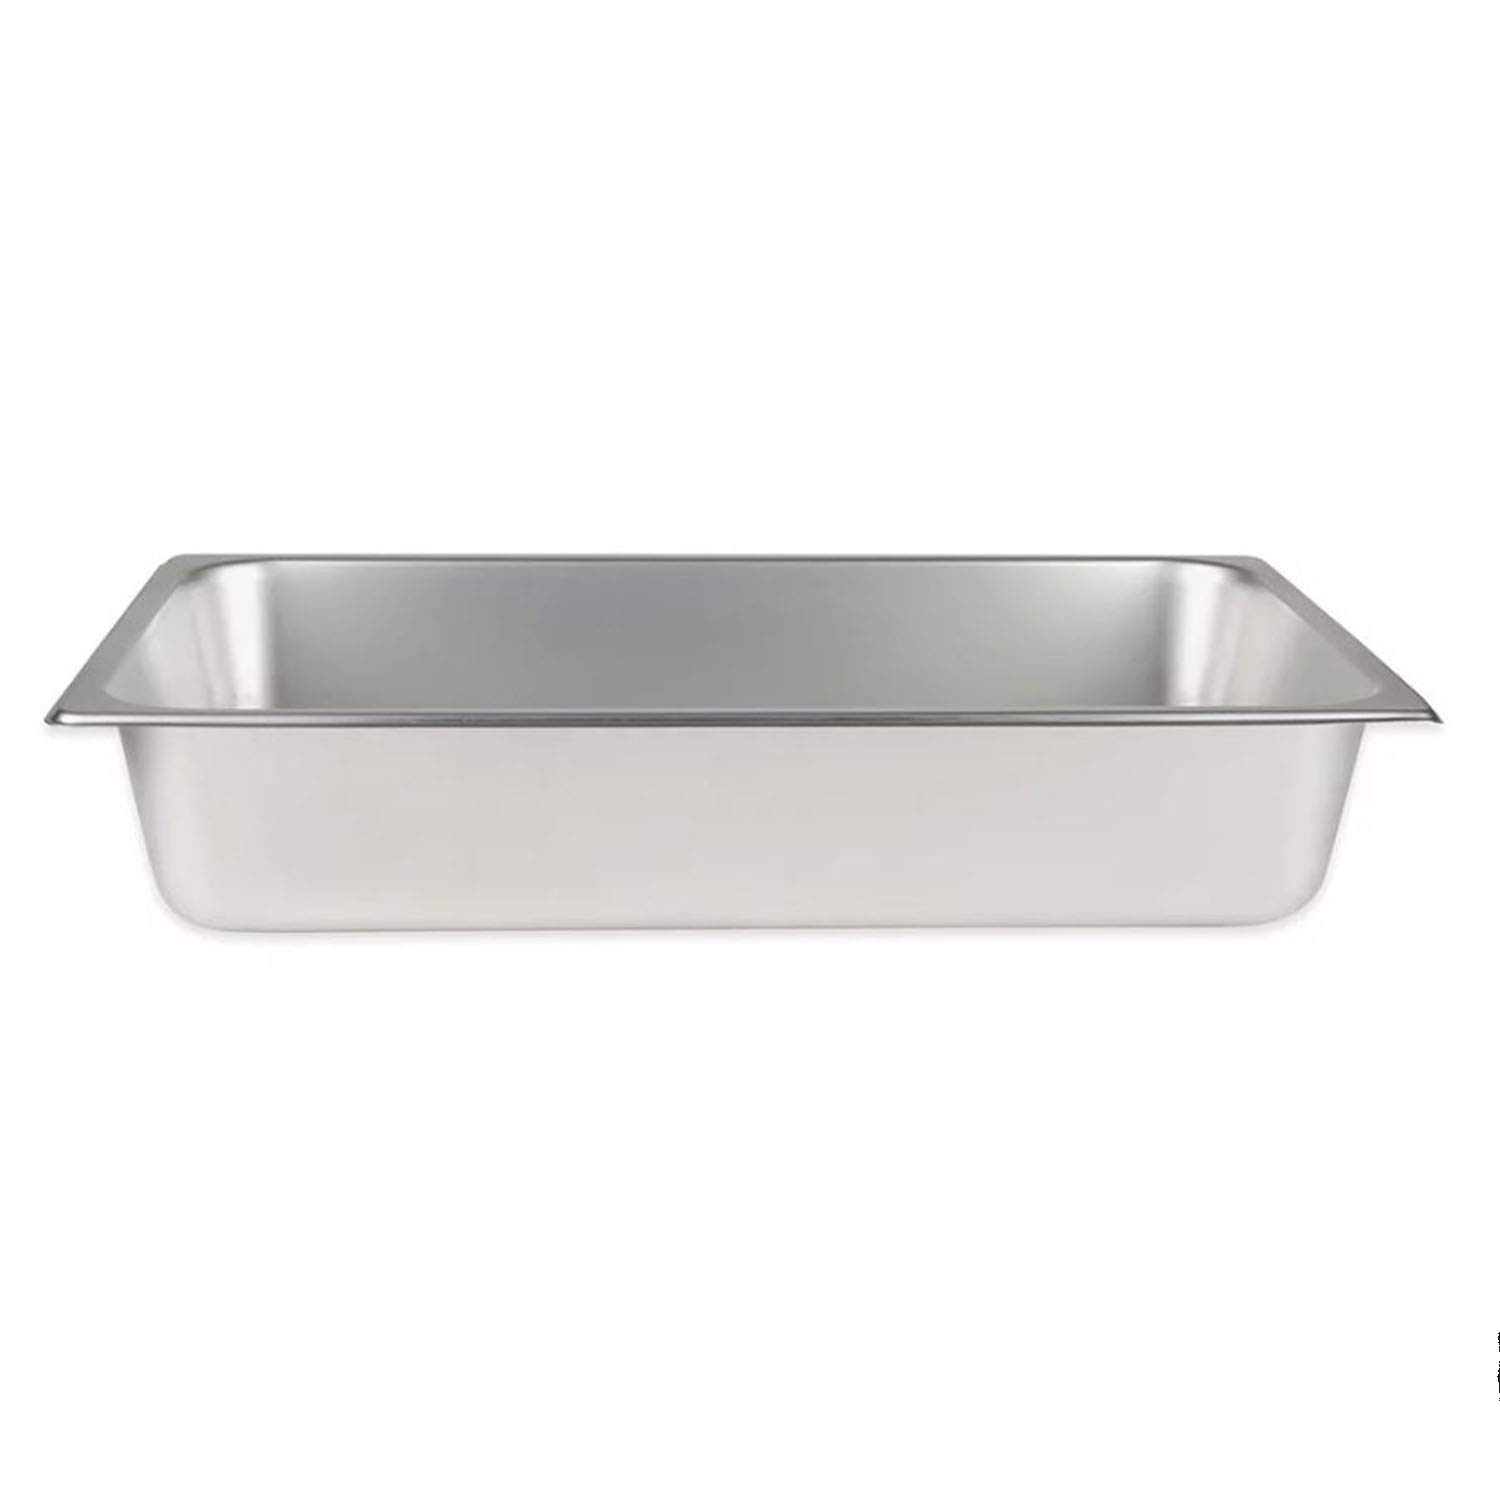 Tiger Chef 8 Quart Full Size Anti Jam Steam Table Pan - 4